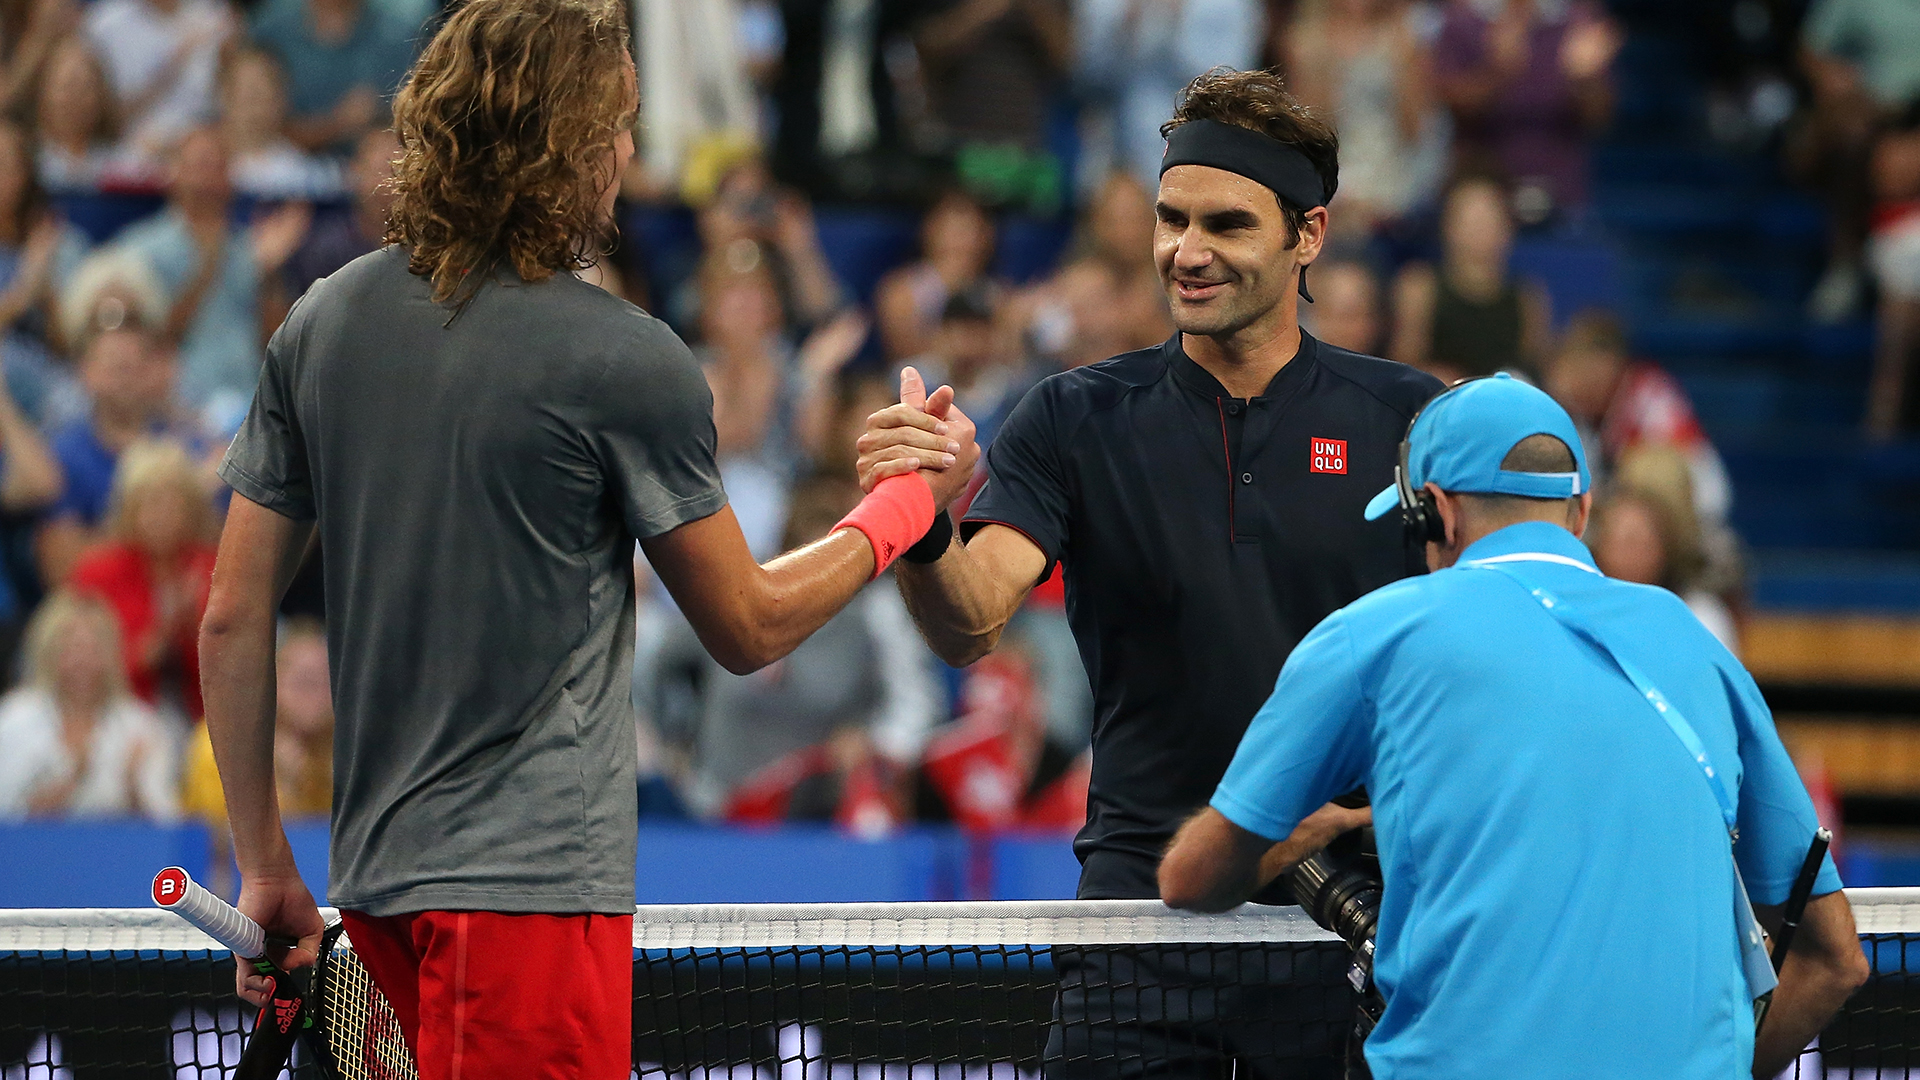 Not so fast, Roger. Federer blocked by security